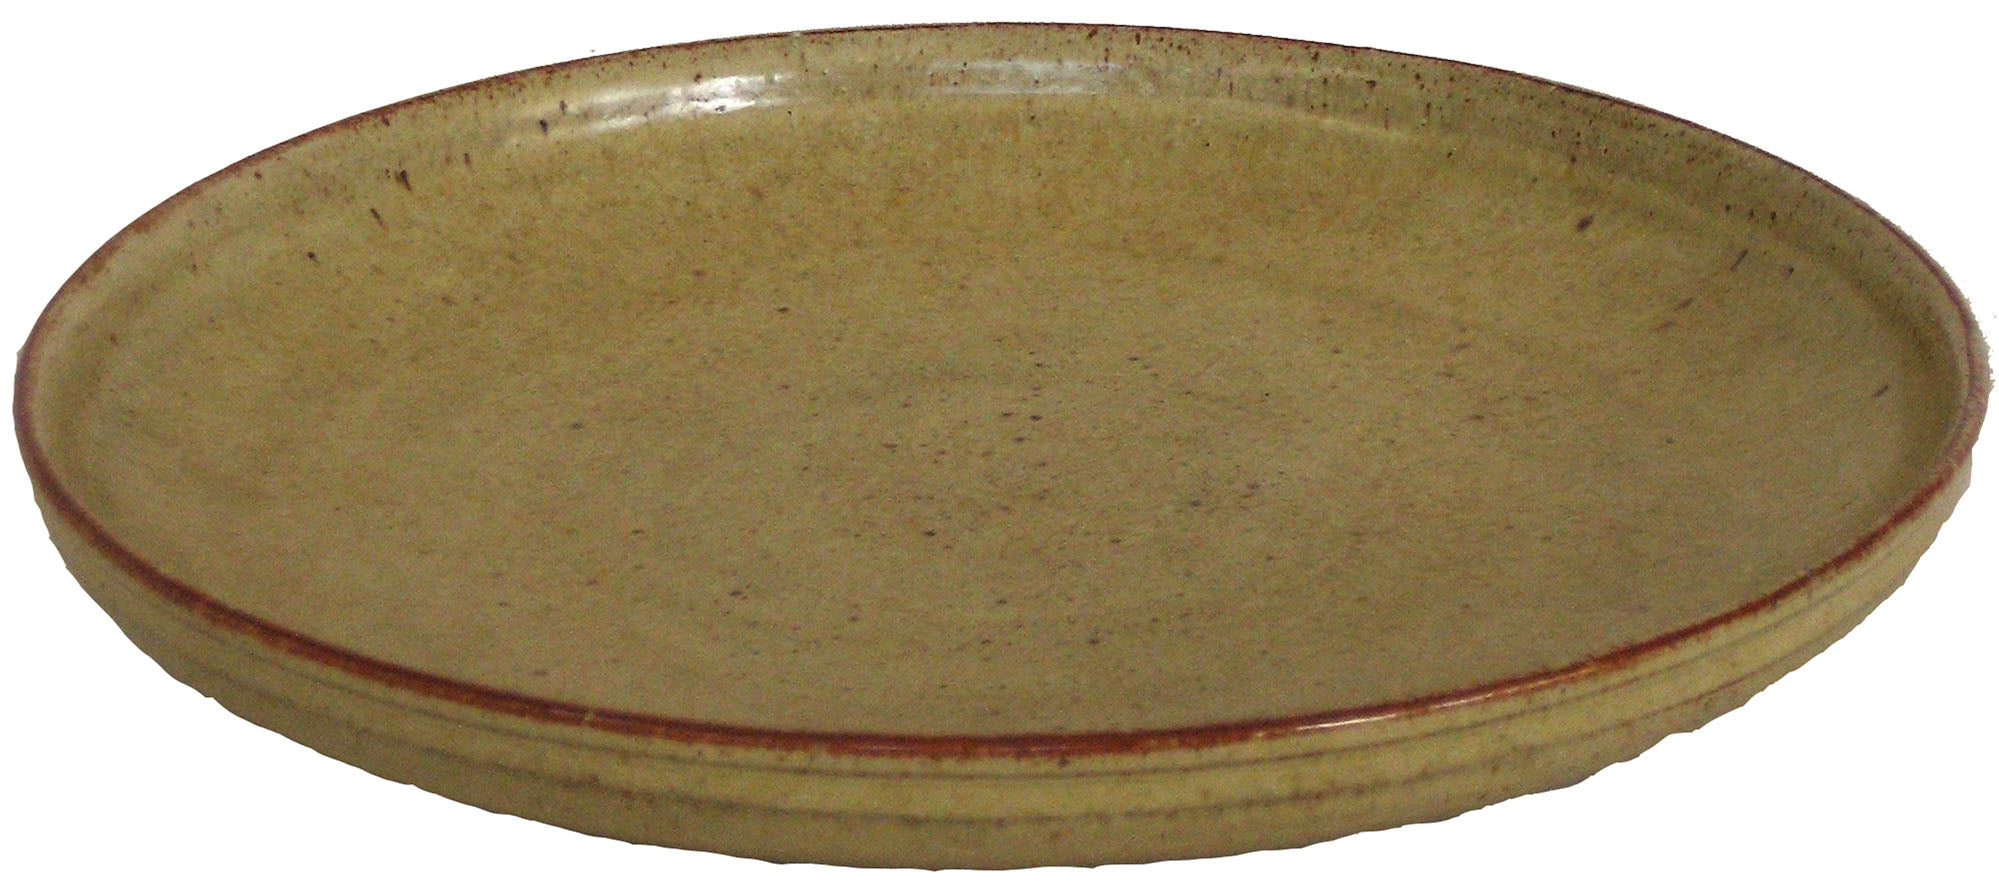 Cream-Colored Ceramic<br>Mid Century<br><br>#5031